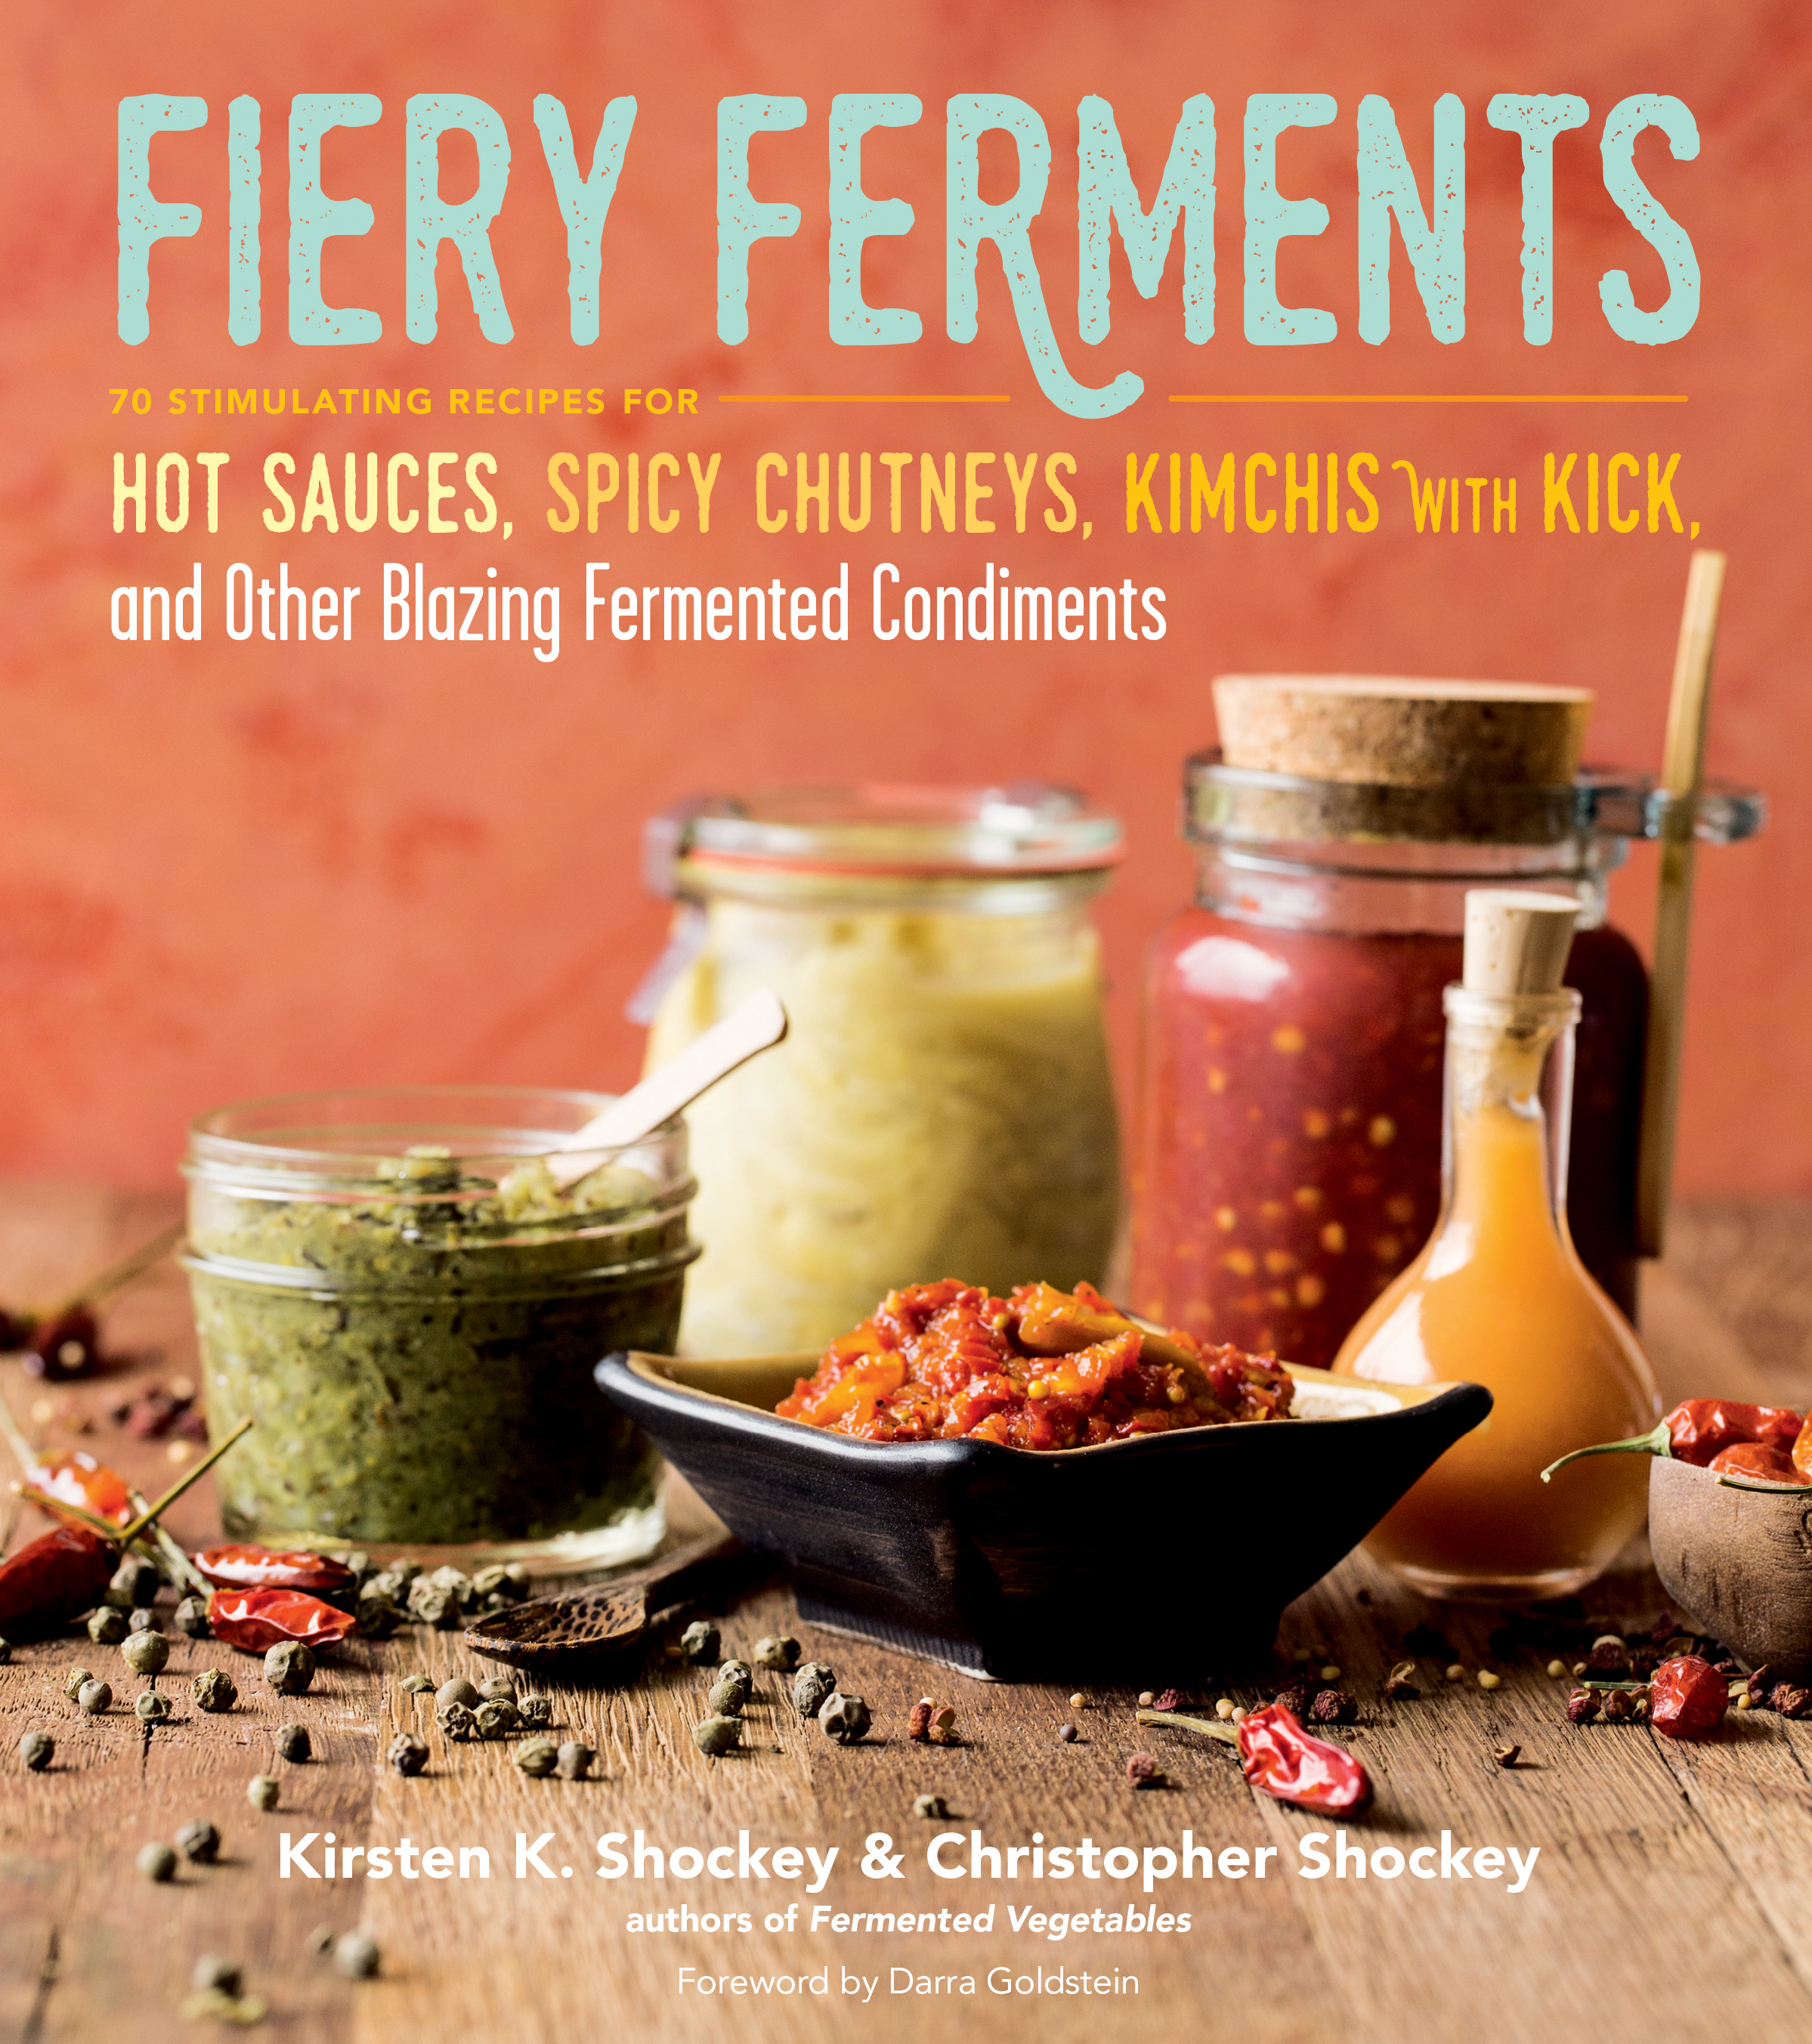 Fiery Ferments 70 Stimulating Recipes for Hot Sauces, Spicy Chutneys, Kimchis with Kick, and Other Blazing Fermented Condiments - Kirsten K. Shockey